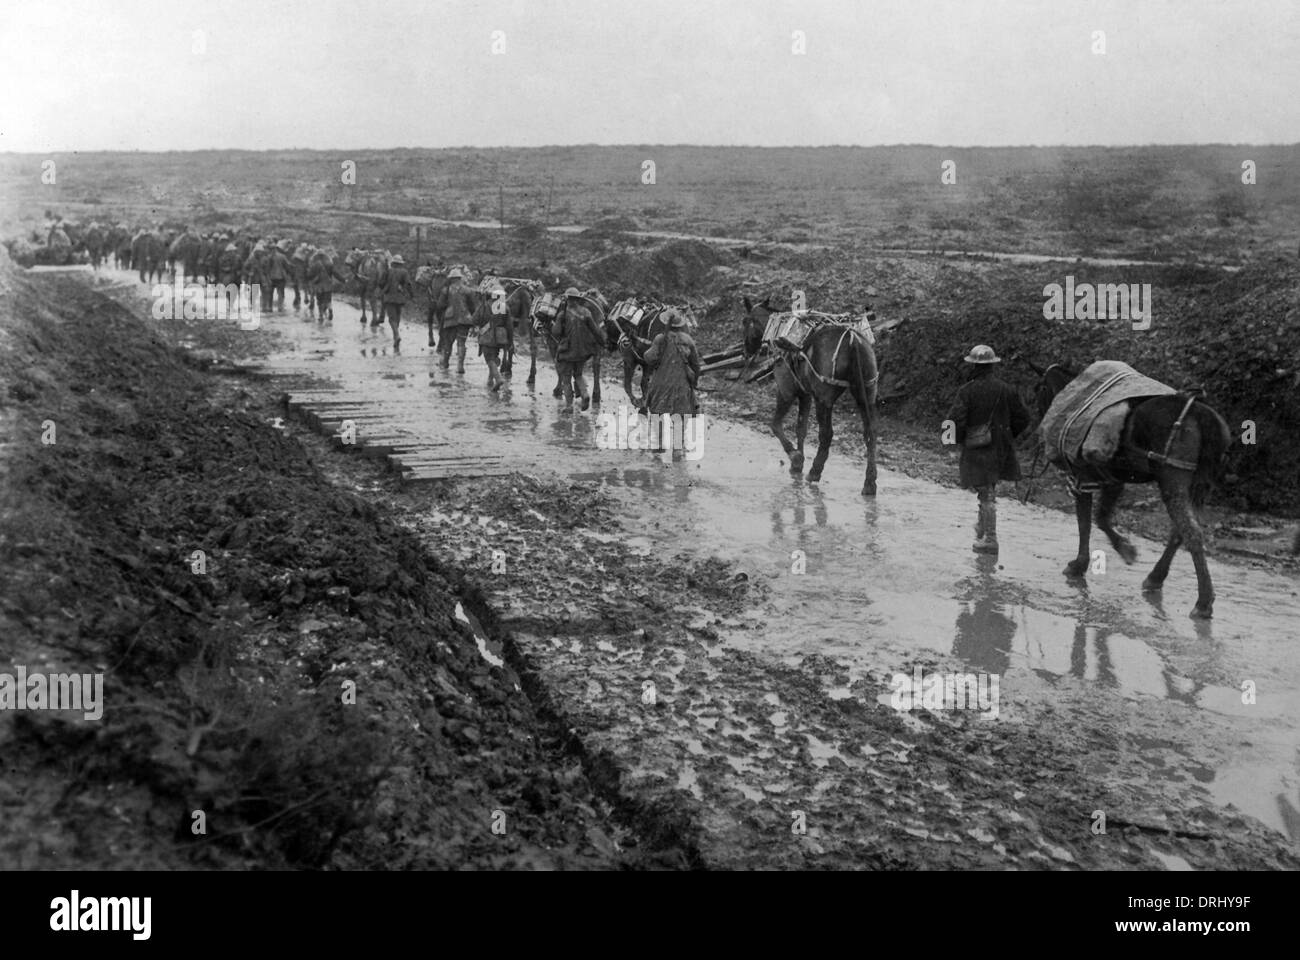 Ammunition on pack mules, Western Front, France, WW1 - Stock Image